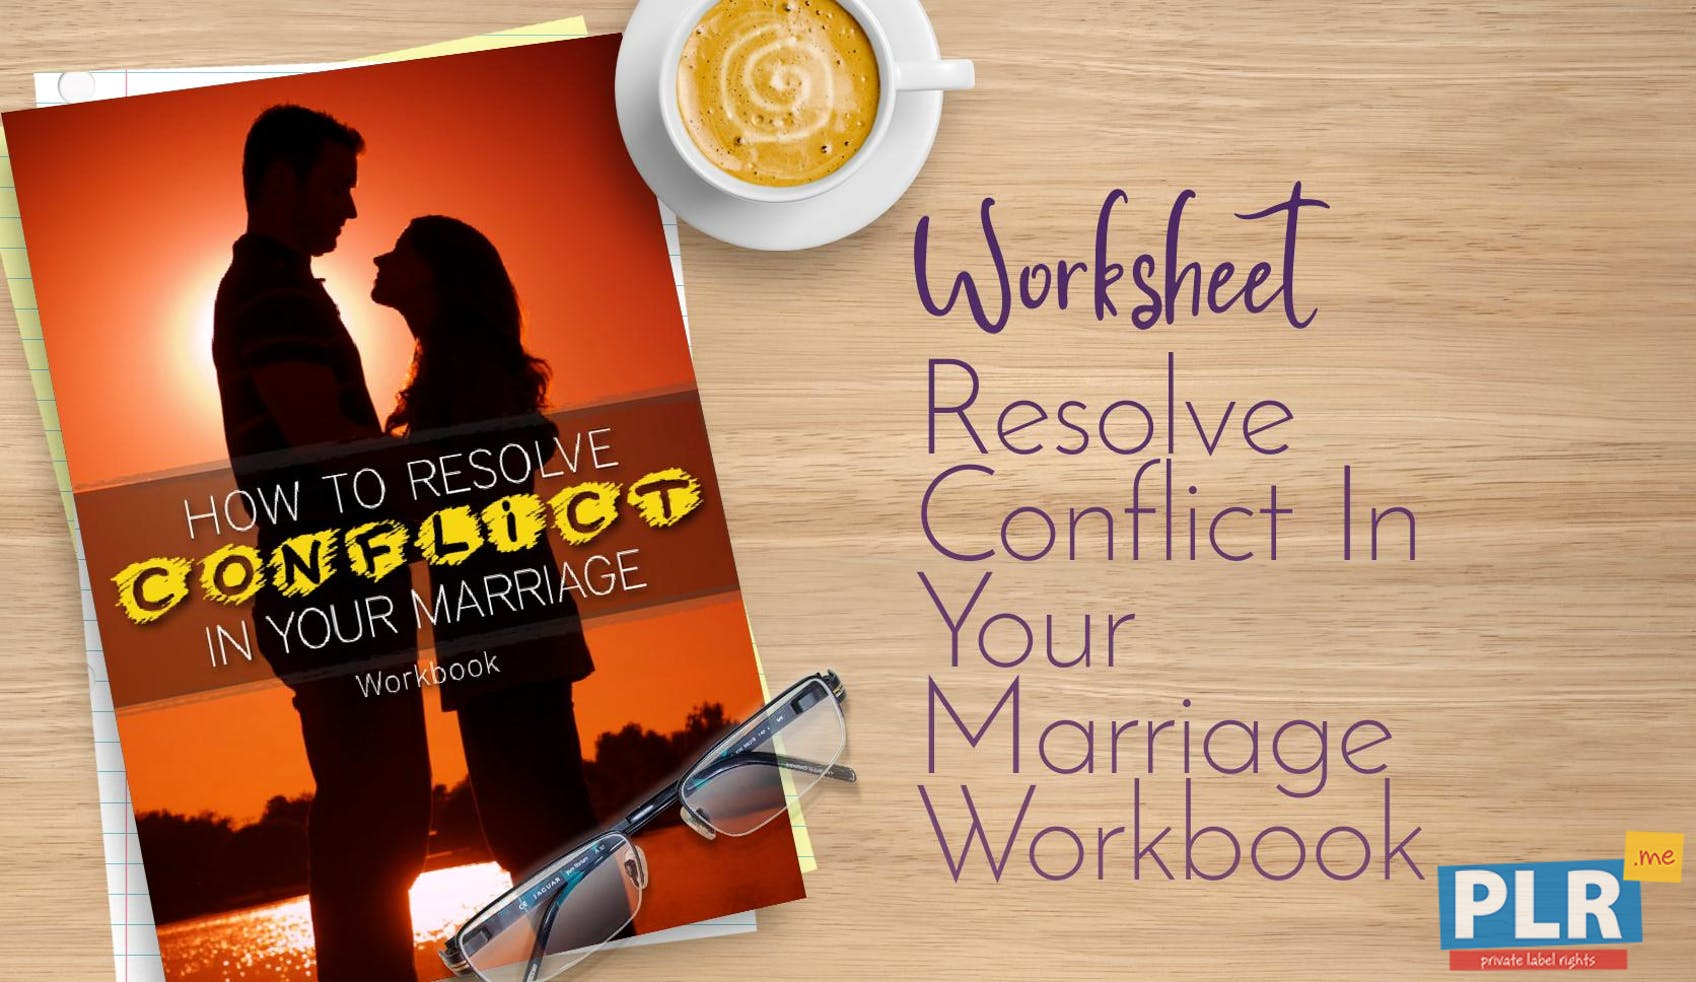 Resolve Conflict In Your Marriage Workbook